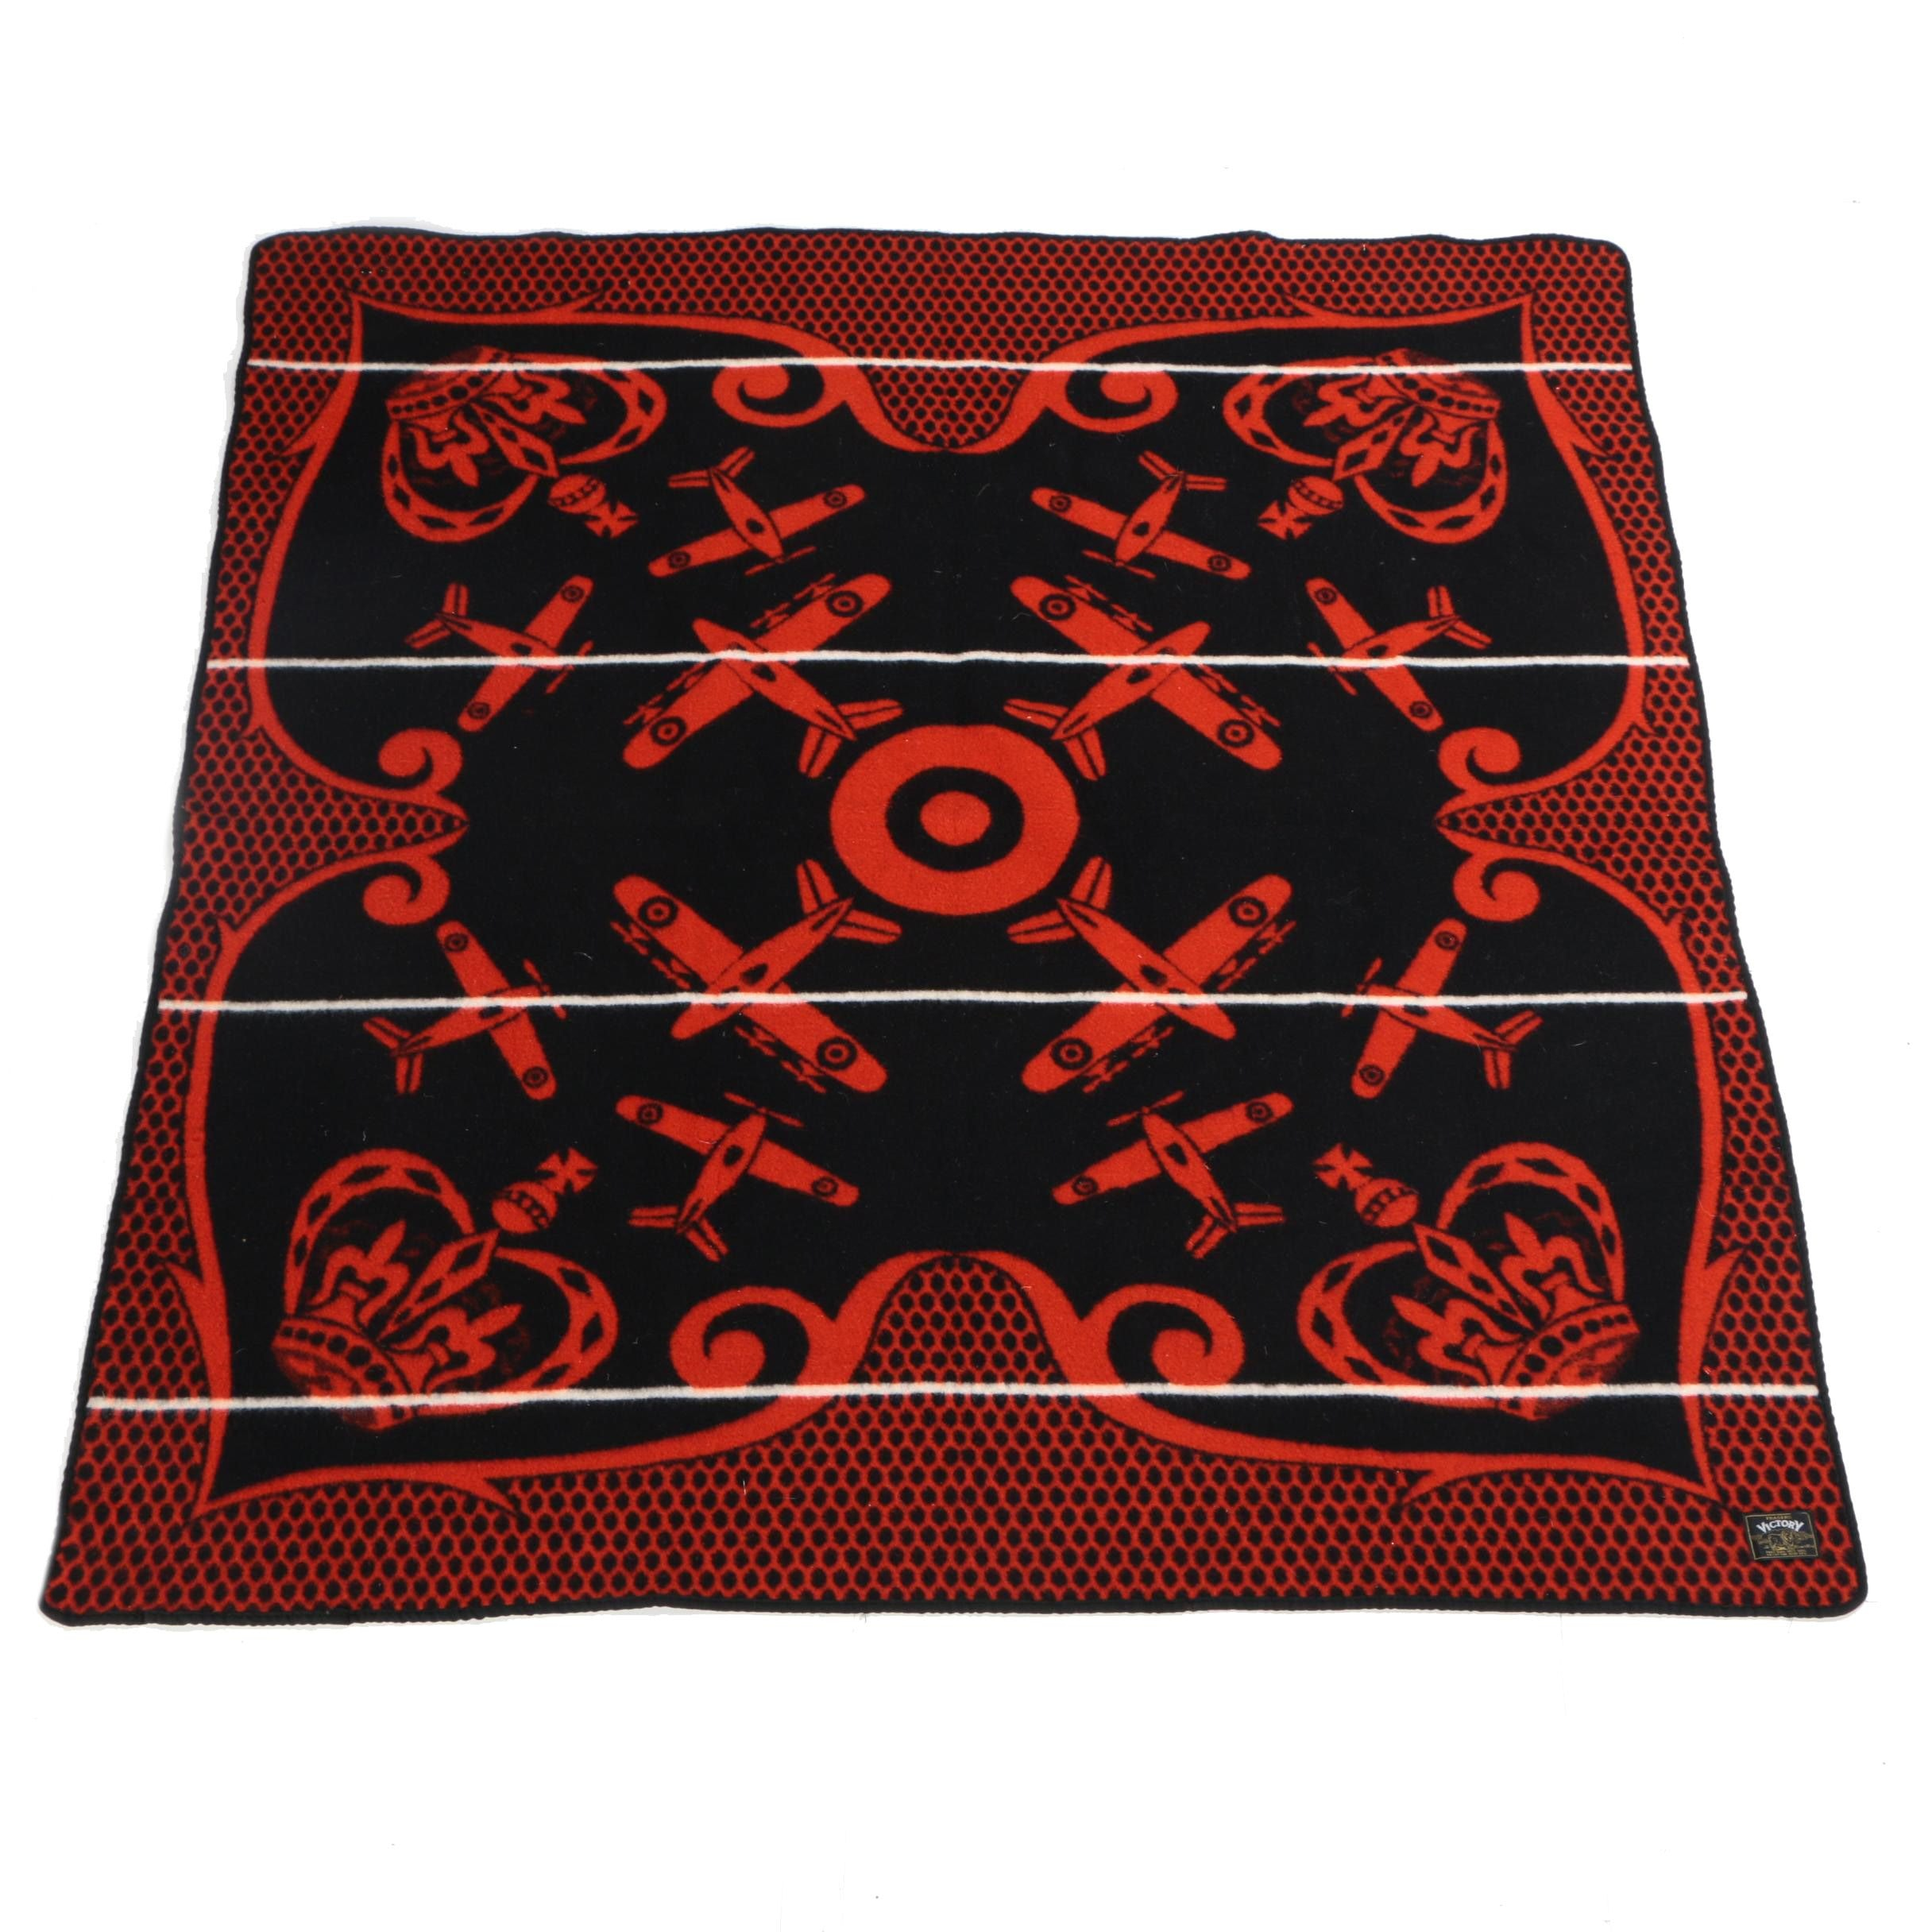 Frasers Victory Airplane Themed Wool Blanket